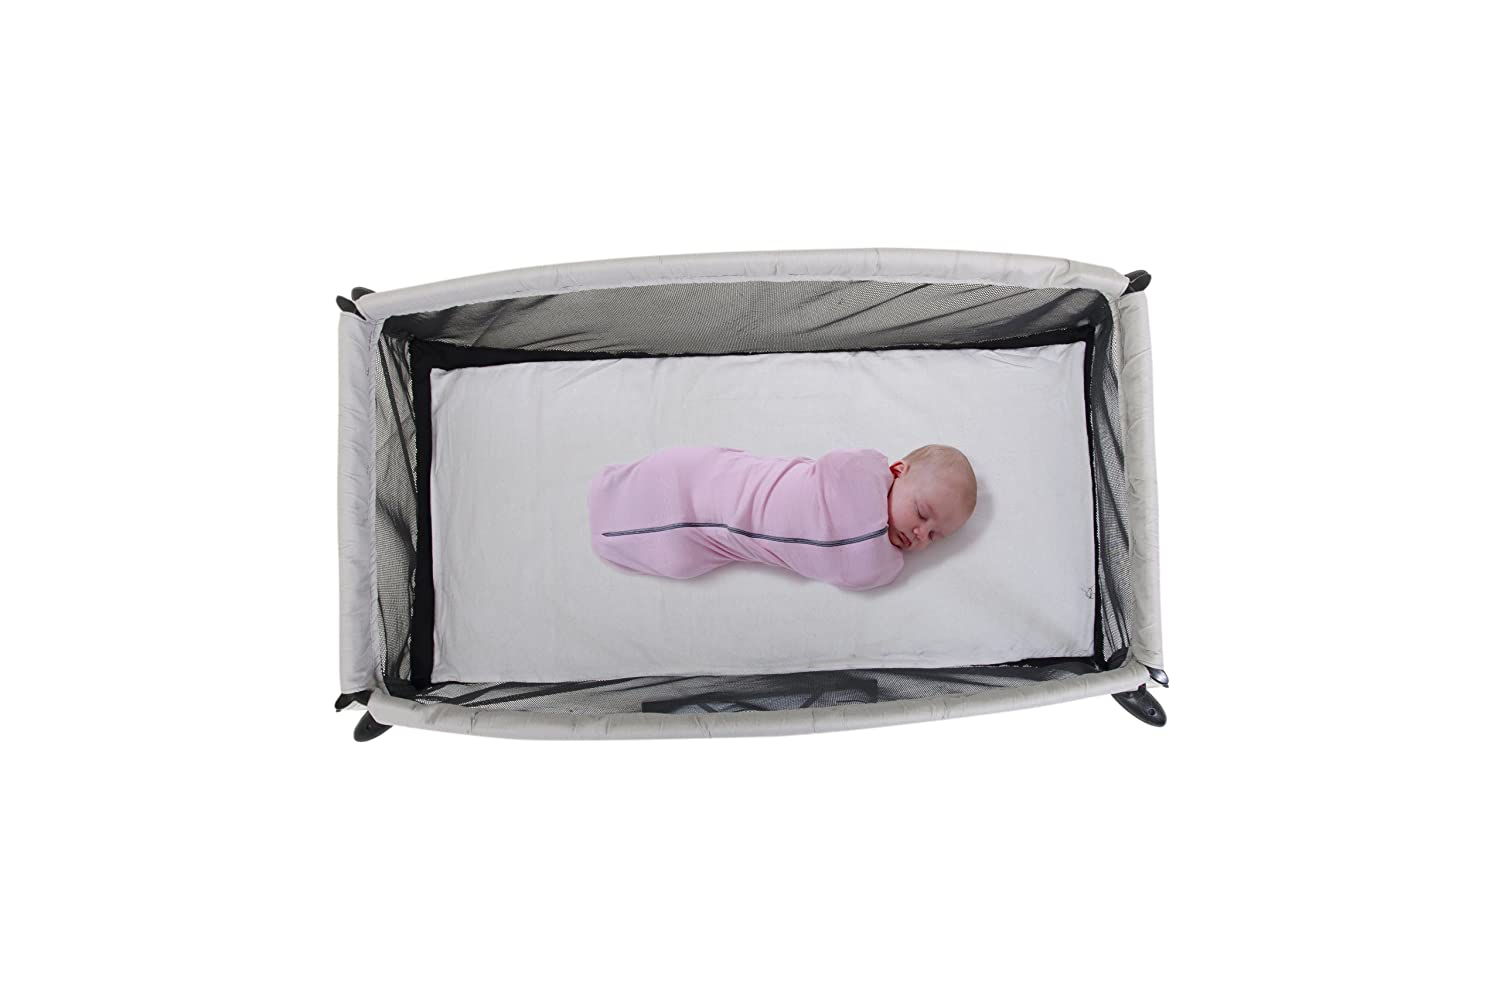 Amazon.com : phil&teds Portable Traveller Crib, Black : Phil And Ted S